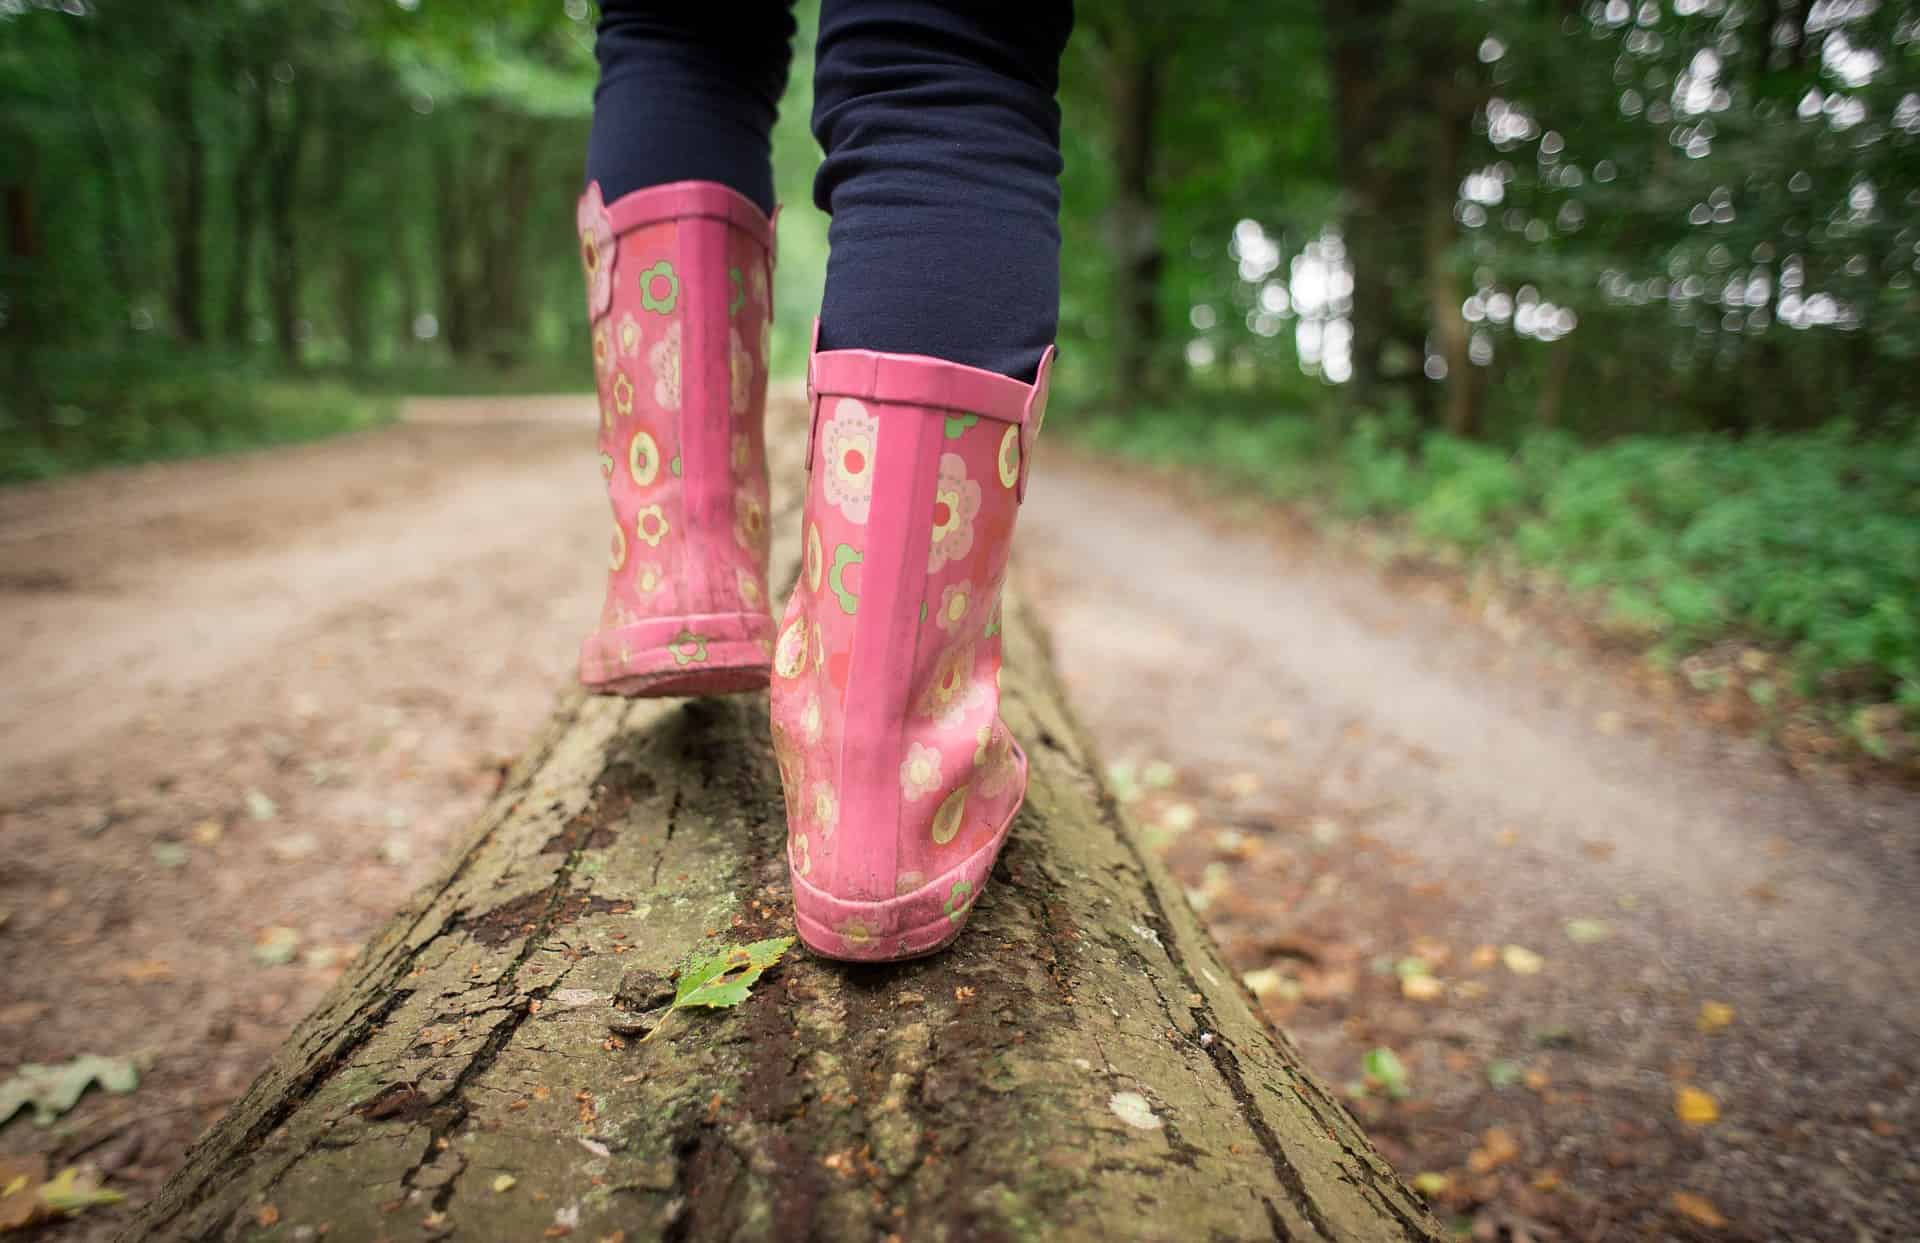 Girl walking in the outdoors in wellies